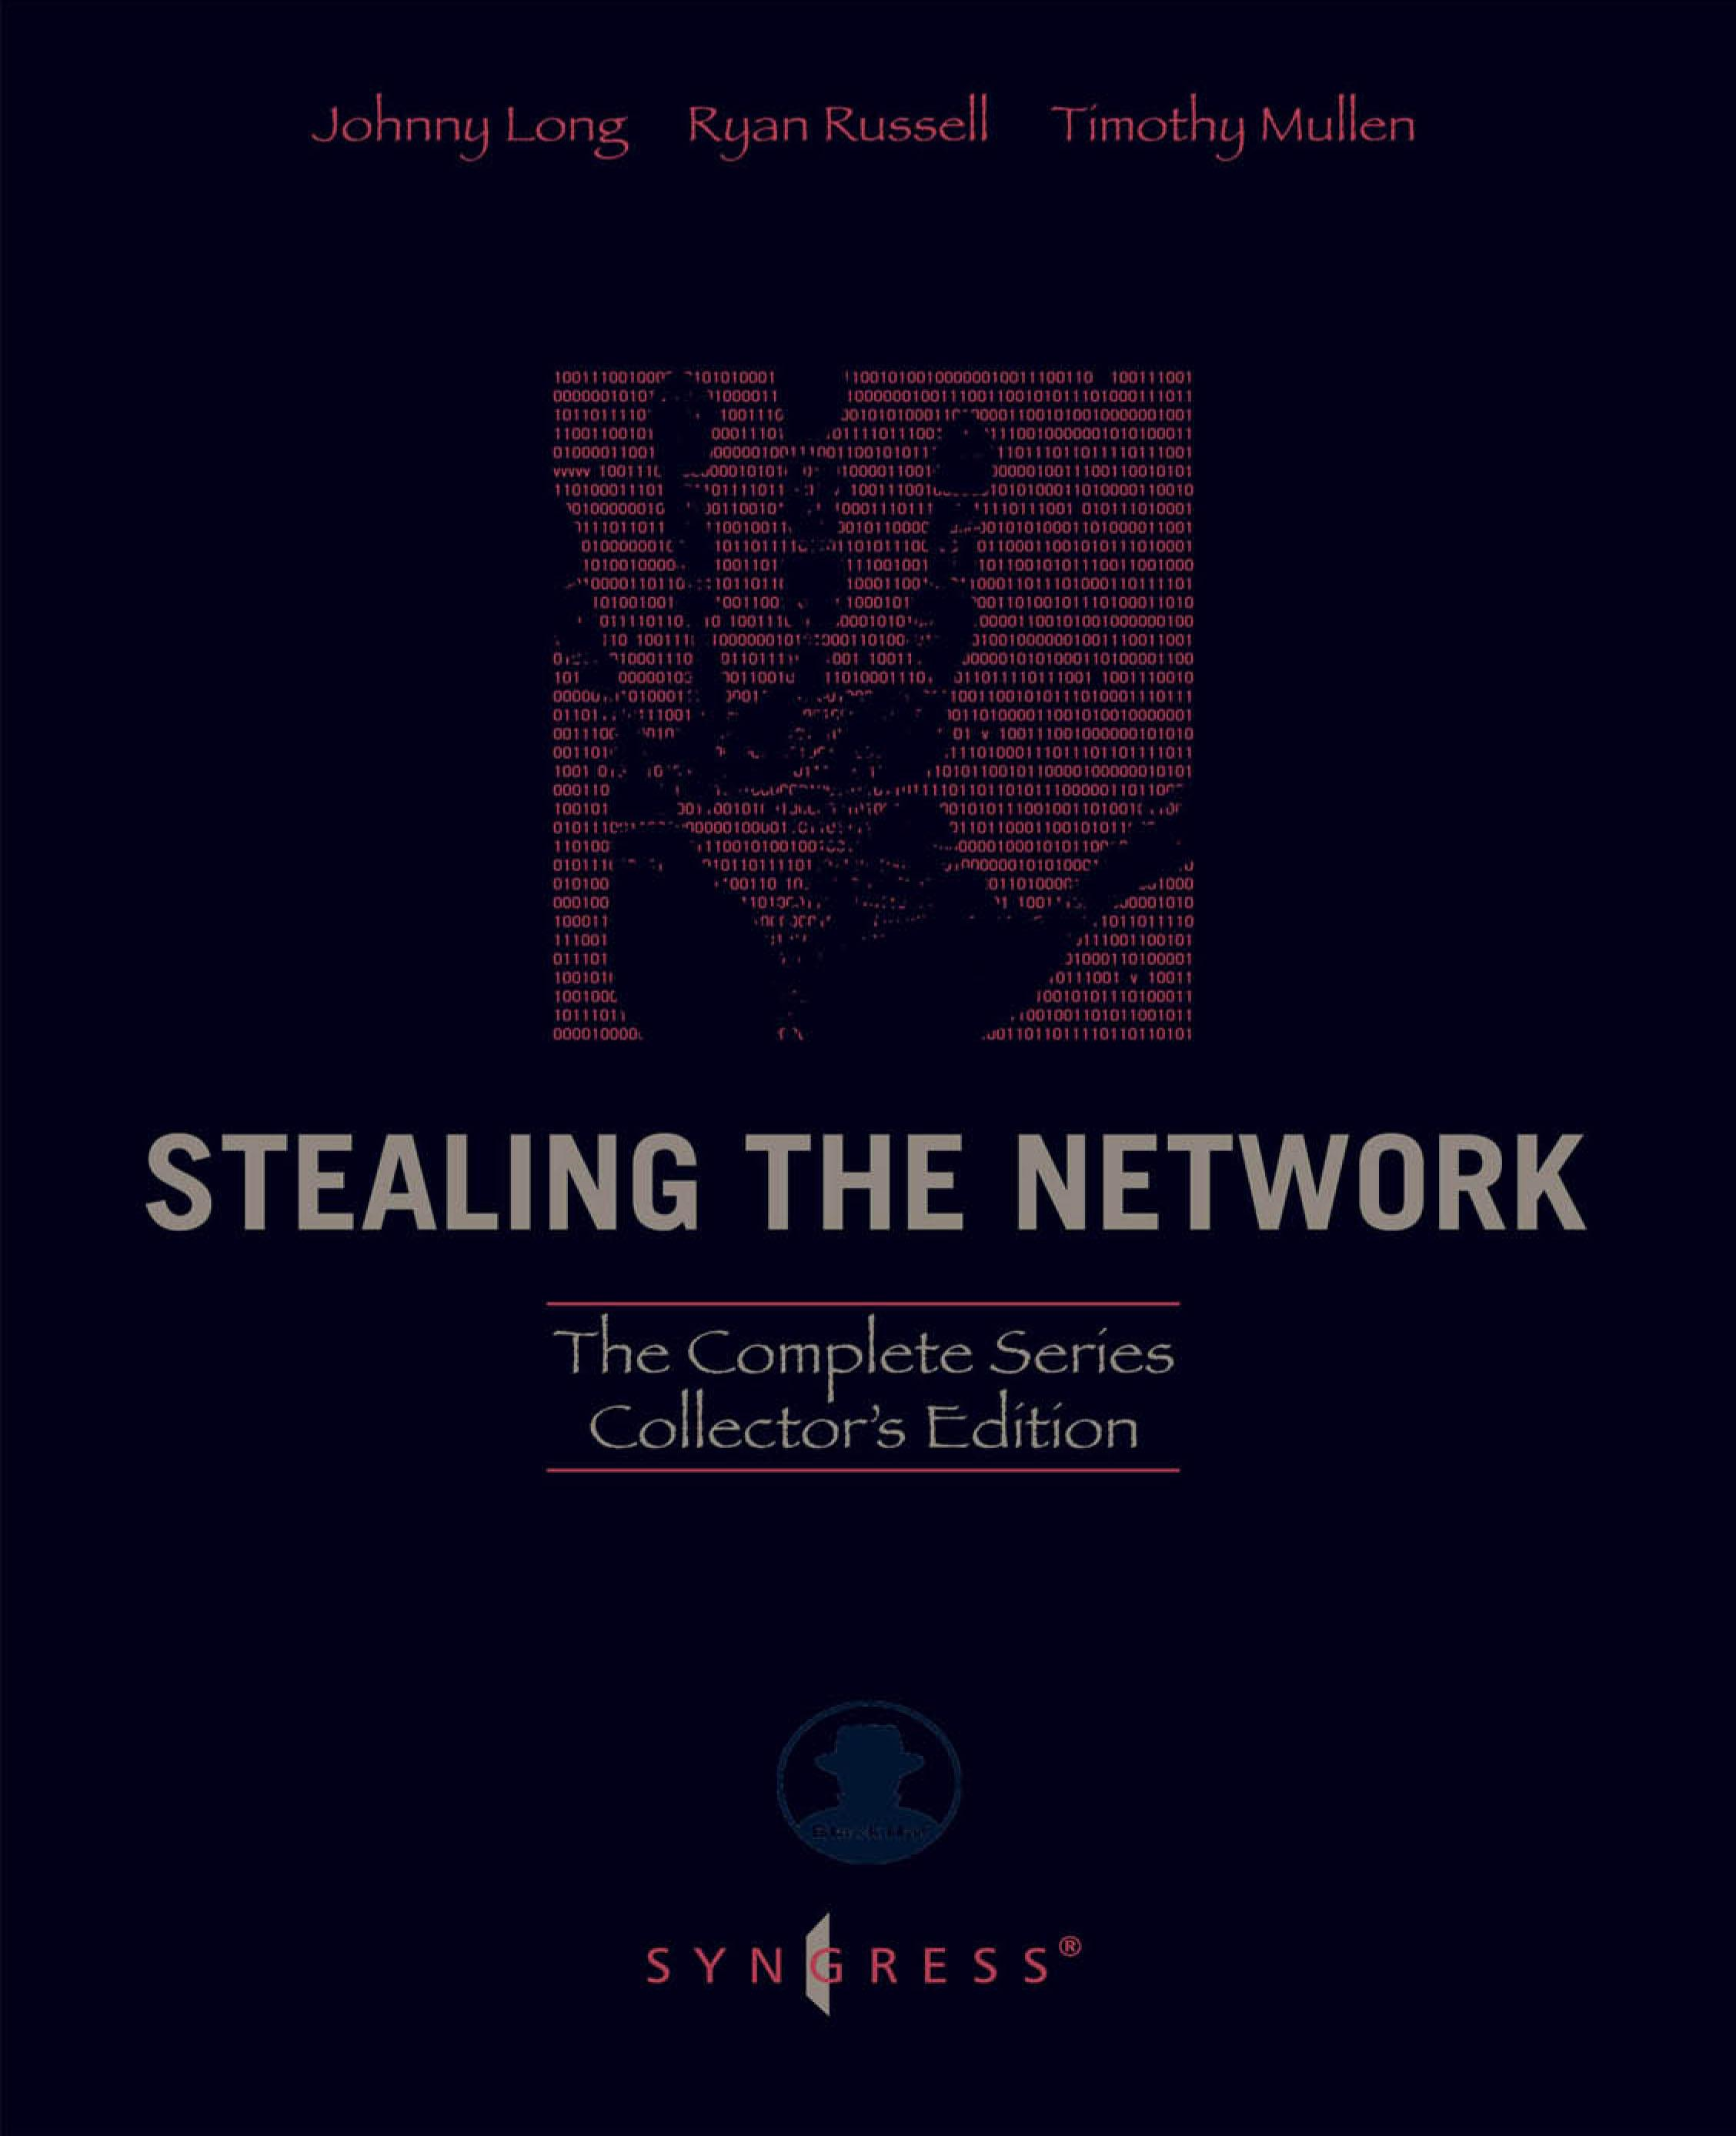 Stealing the Network: The Complete Series Collector's Edition, Final Chapter, and DVD: The Complete Series Collector's Edition, Final Chapter, and DVD EB2370003015843